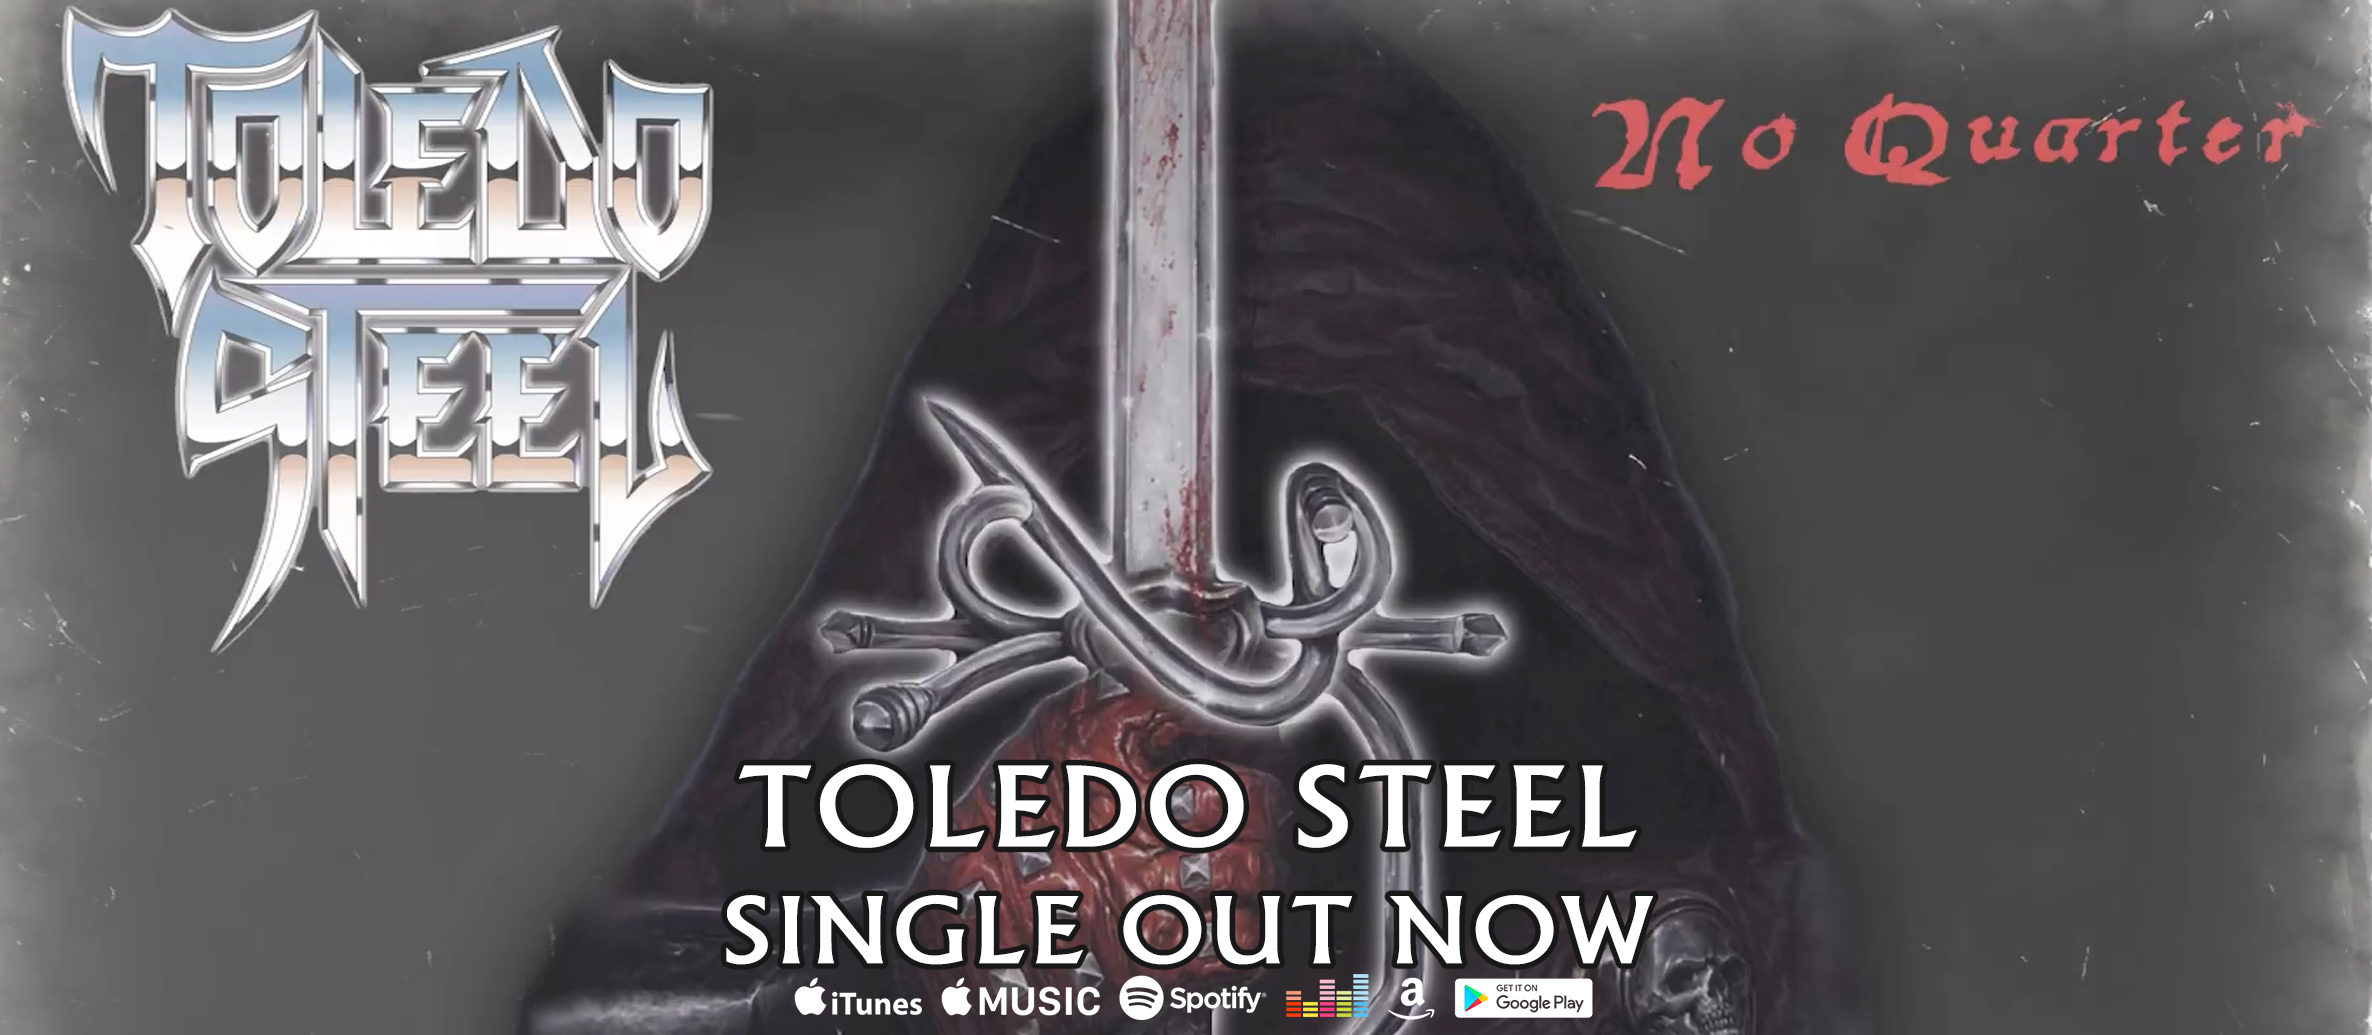 New Toledo Steel Single 'No Quarter' Out Now!